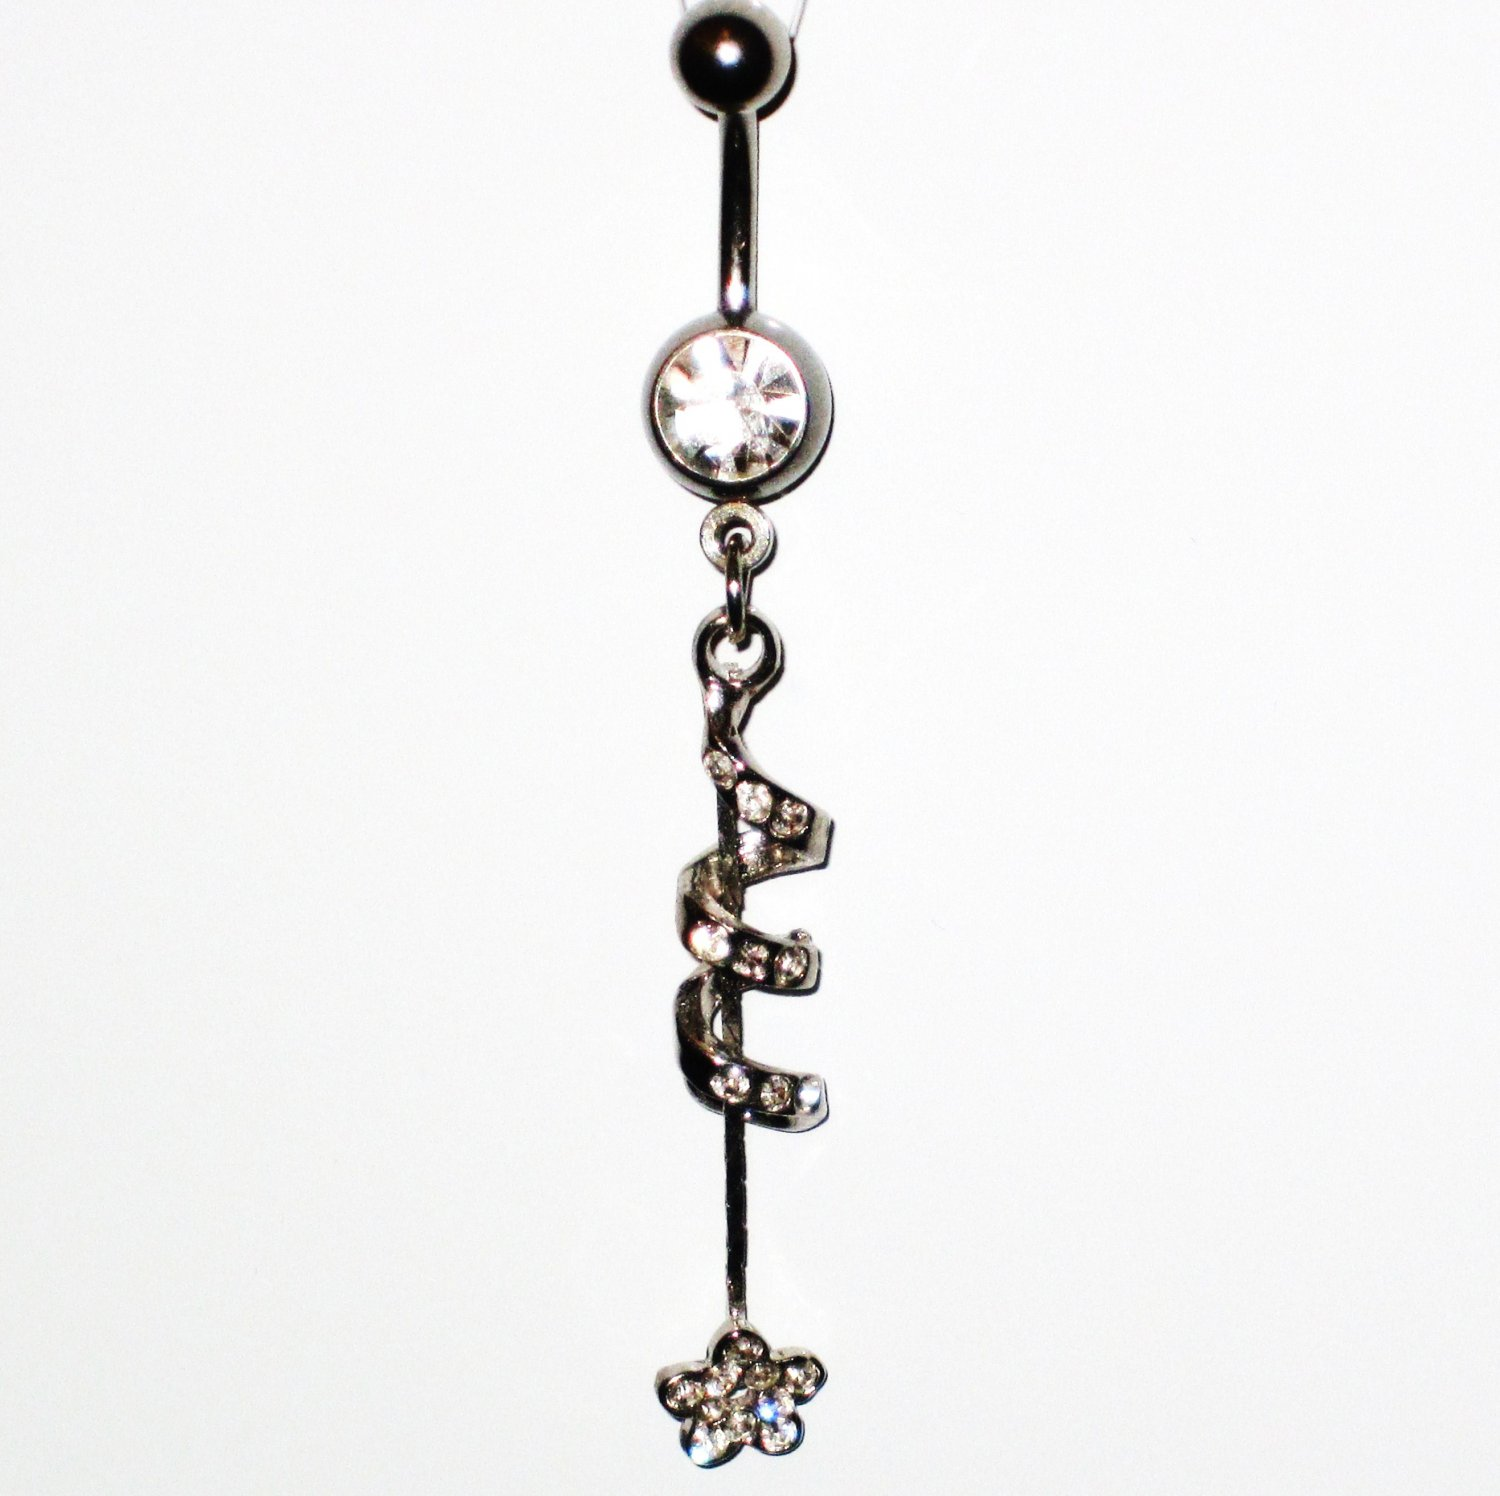 CLEAR Austrian Crystal Spiral Flower Dangle Stainless Steel Belly Ring BJ43